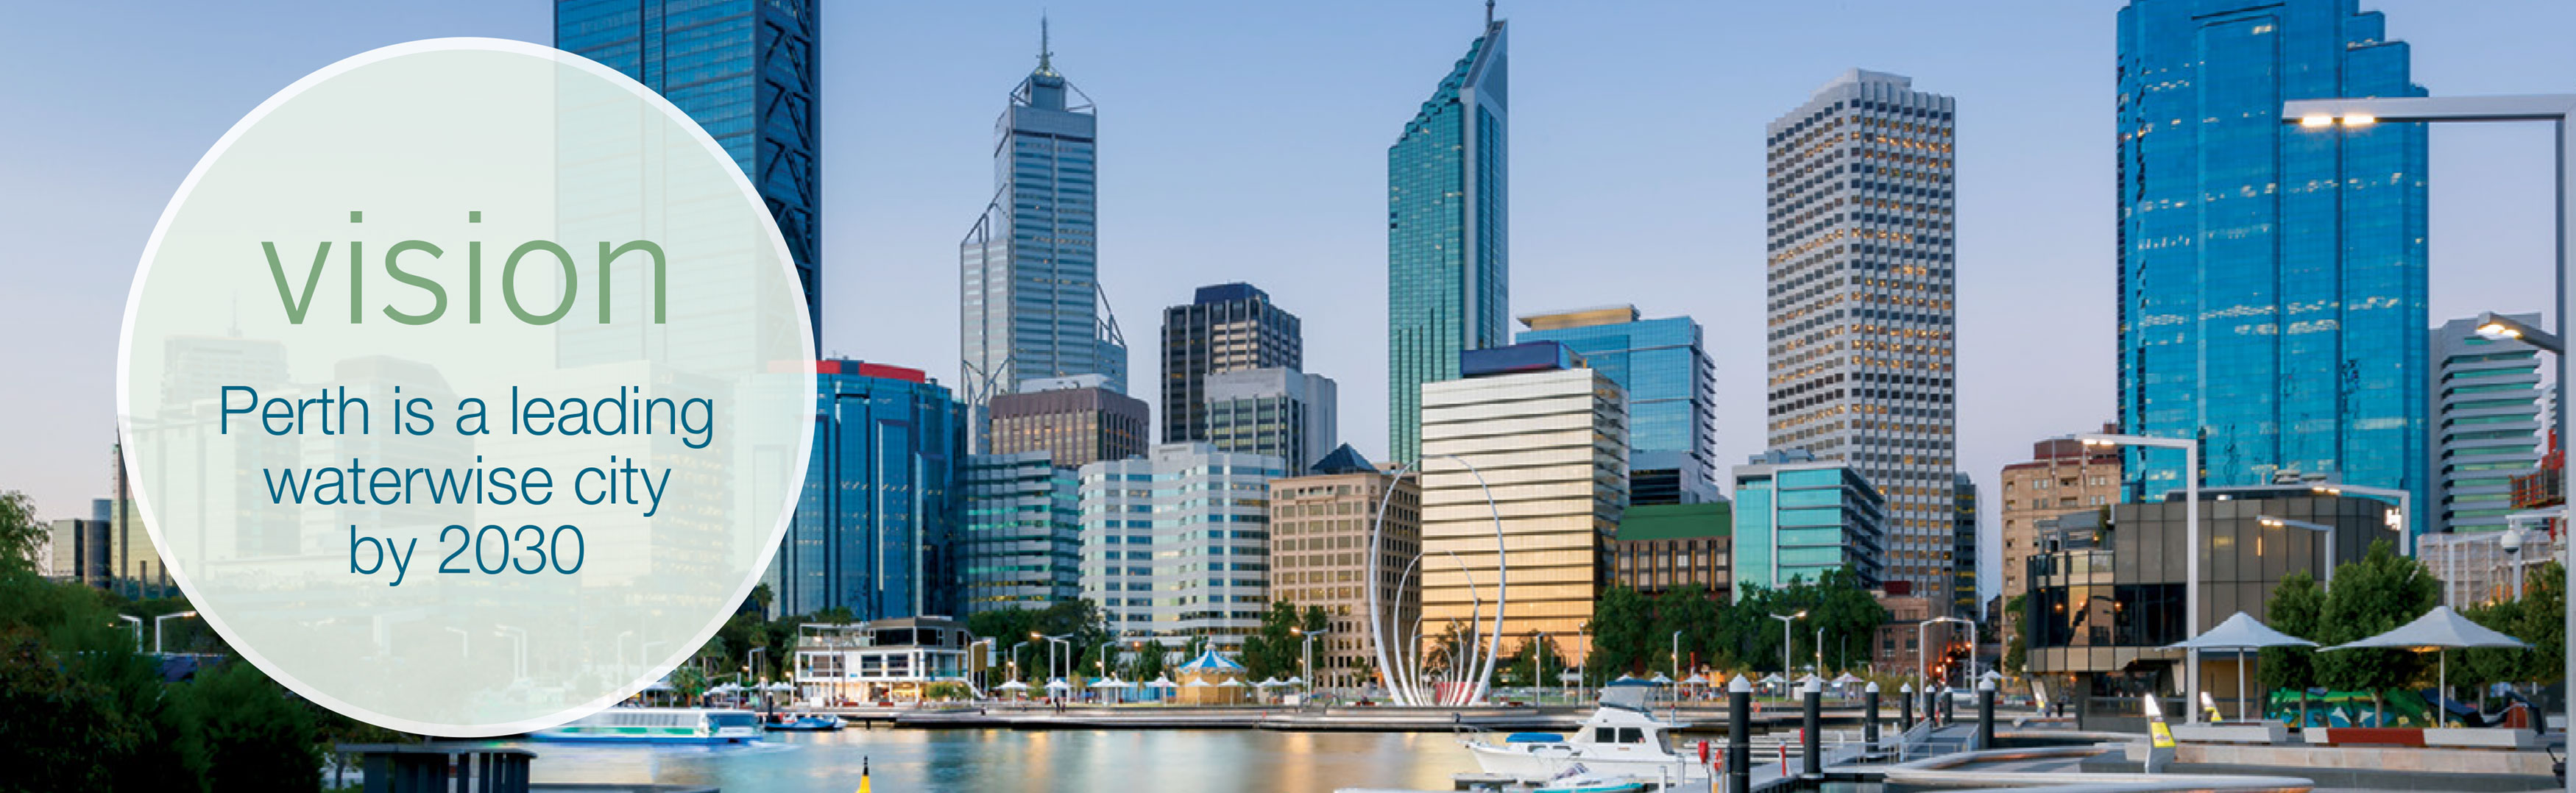 Perth is leading waterwise city by 2030 banner